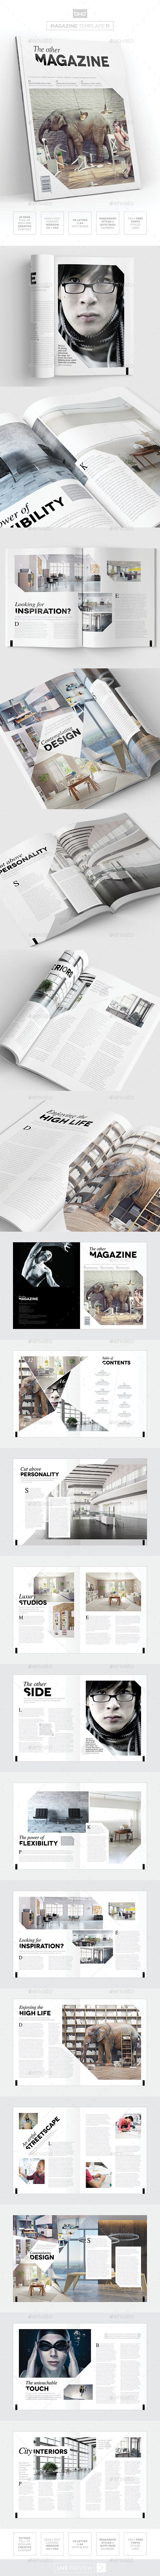 Magazine Template  InDesign 24 Page Layout V11 — InDesign INDD #clean #business • Download ➝ https://graphicriver.net/item/magazine-template-indesign-24-page-layout-v11/19672556?ref=pxcr